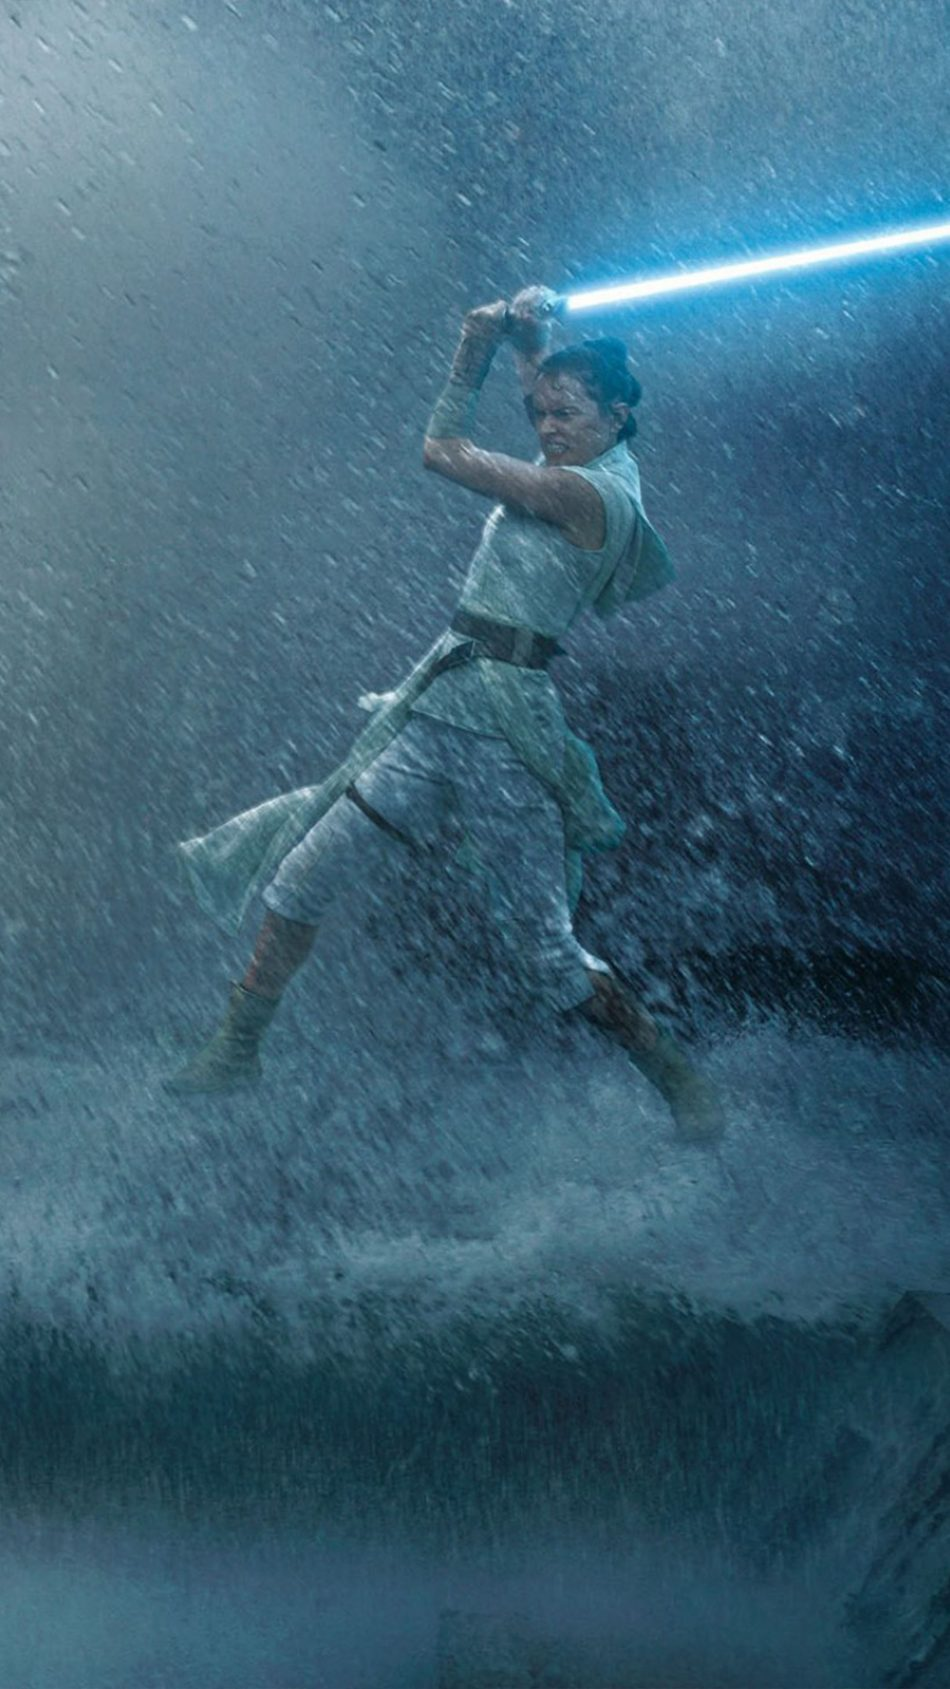 Free Download Download Daisy Ridley Fight In Star Wars The Rise Of Skywalker 950x1689 For Your Desktop Mobile Tablet Explore 35 4k Daisy Ridley 2020 Wallpapers 4k Daisy Ridley